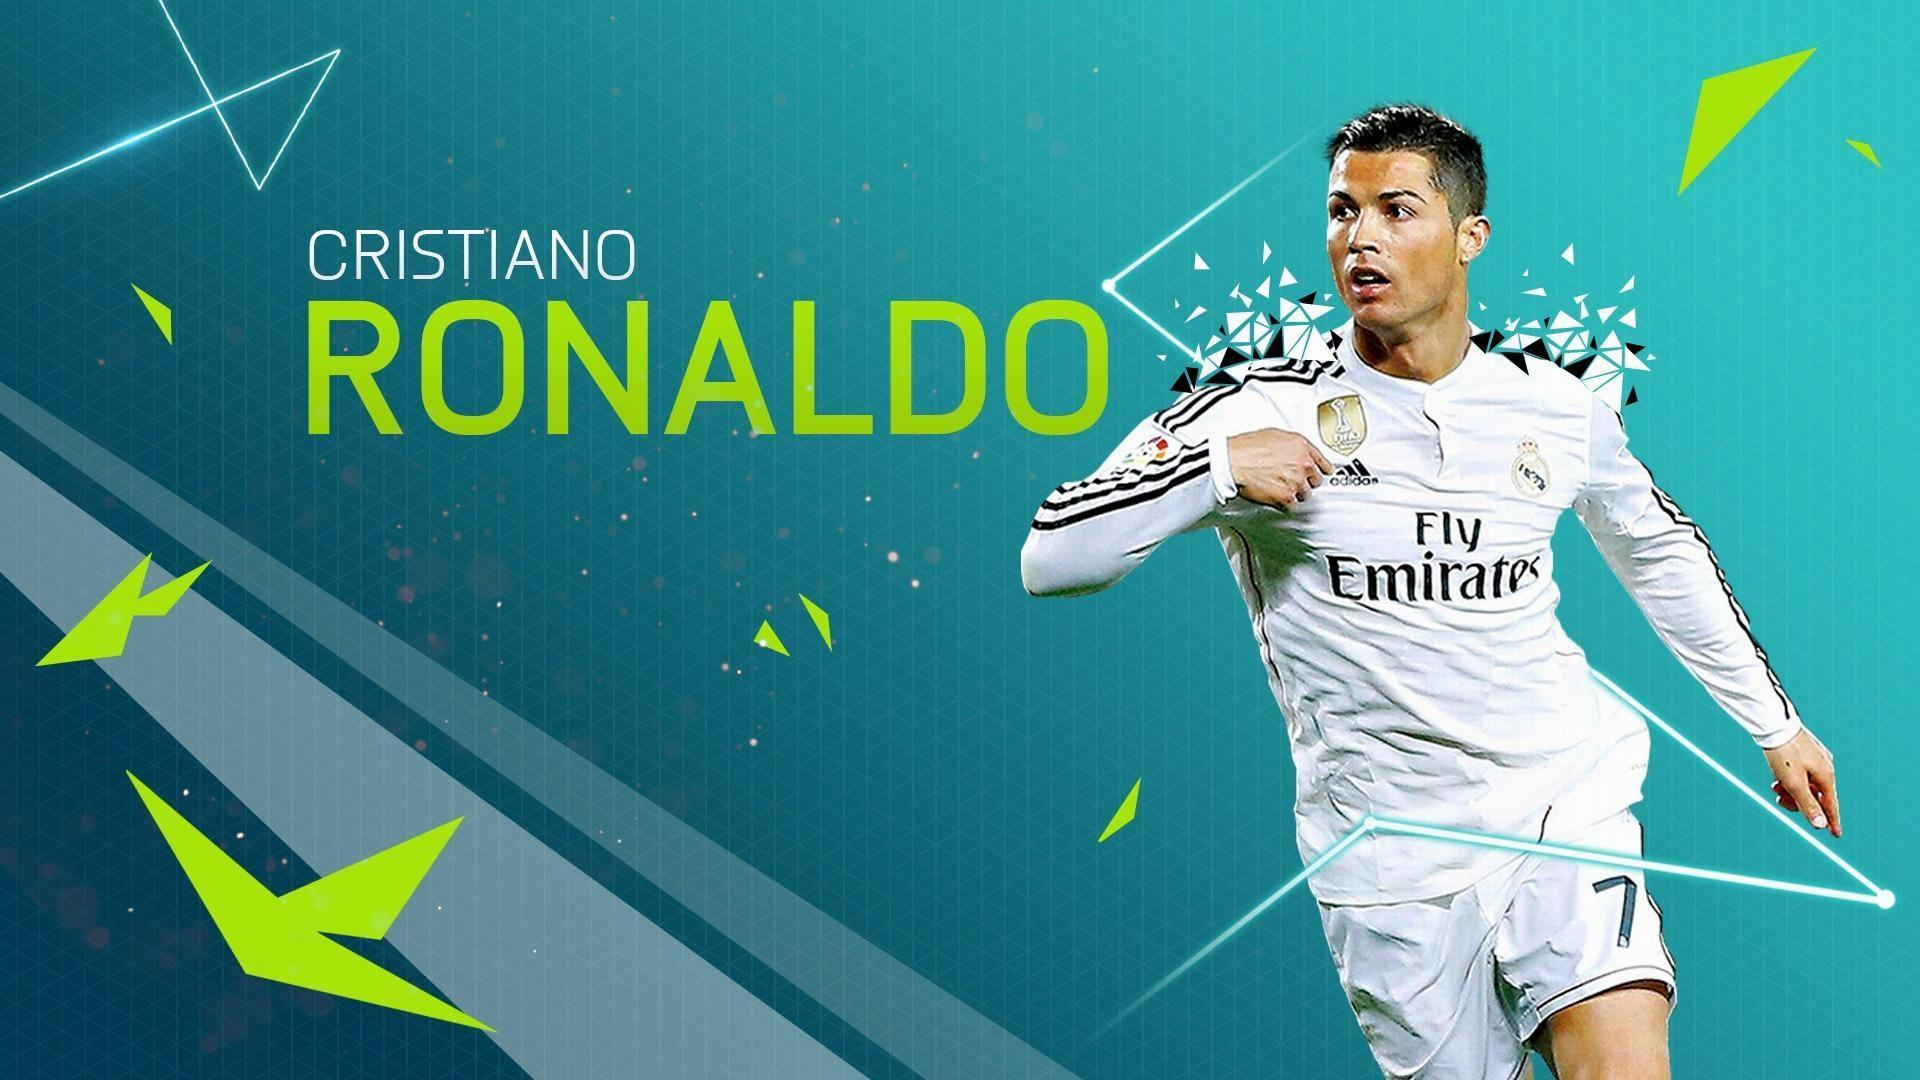 Ronaldo Wallpapers Hd For Android Apk Download